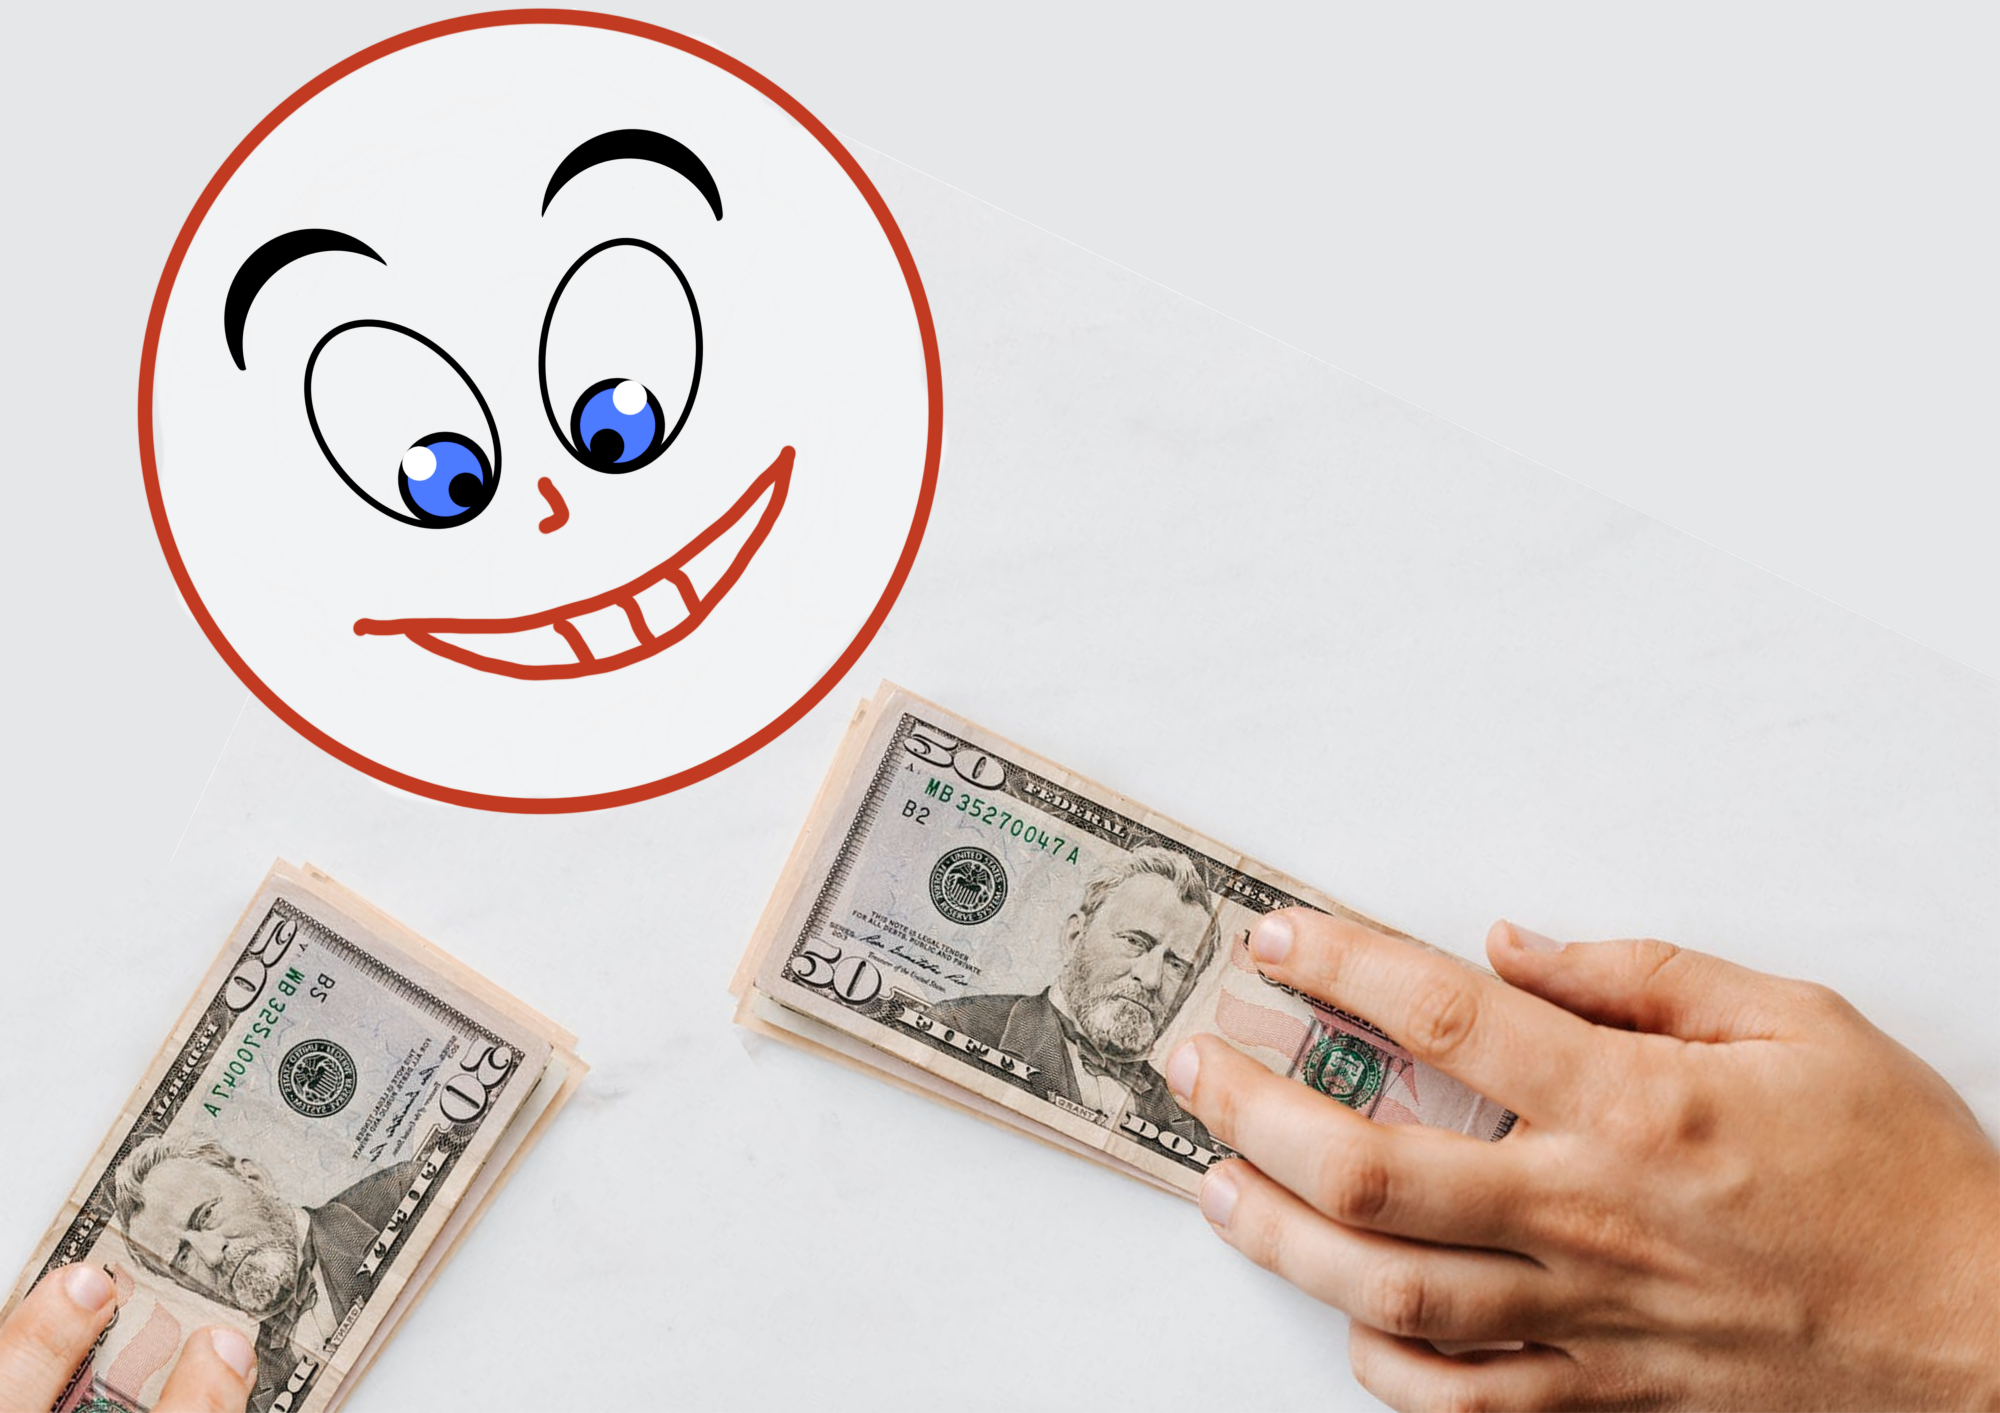 A cartoon of a head smiling at money